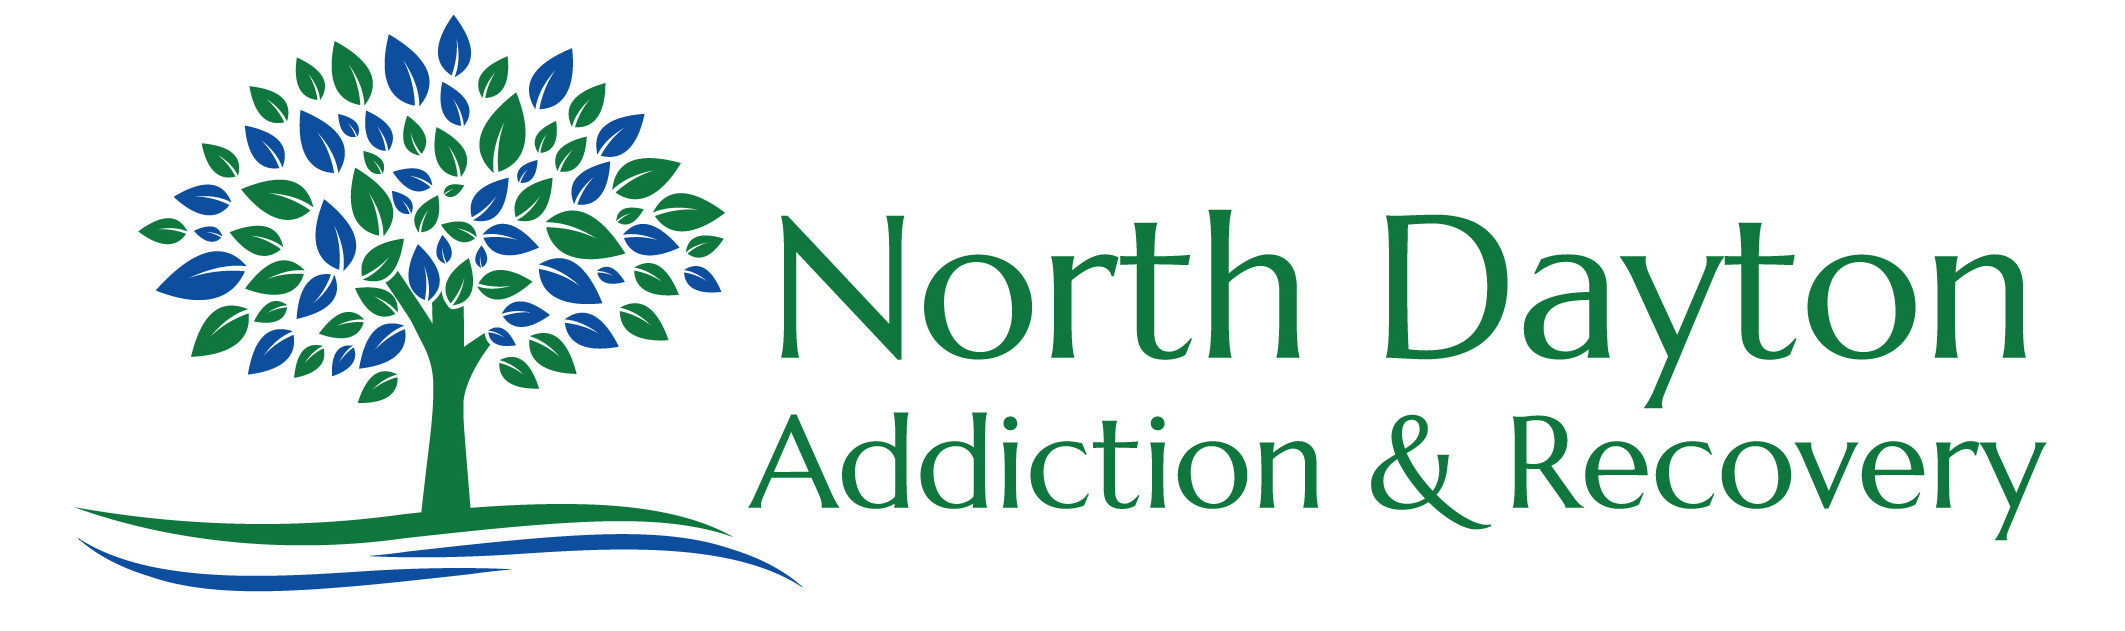 Opiate Addiction Treatment in Dayton, OHIO